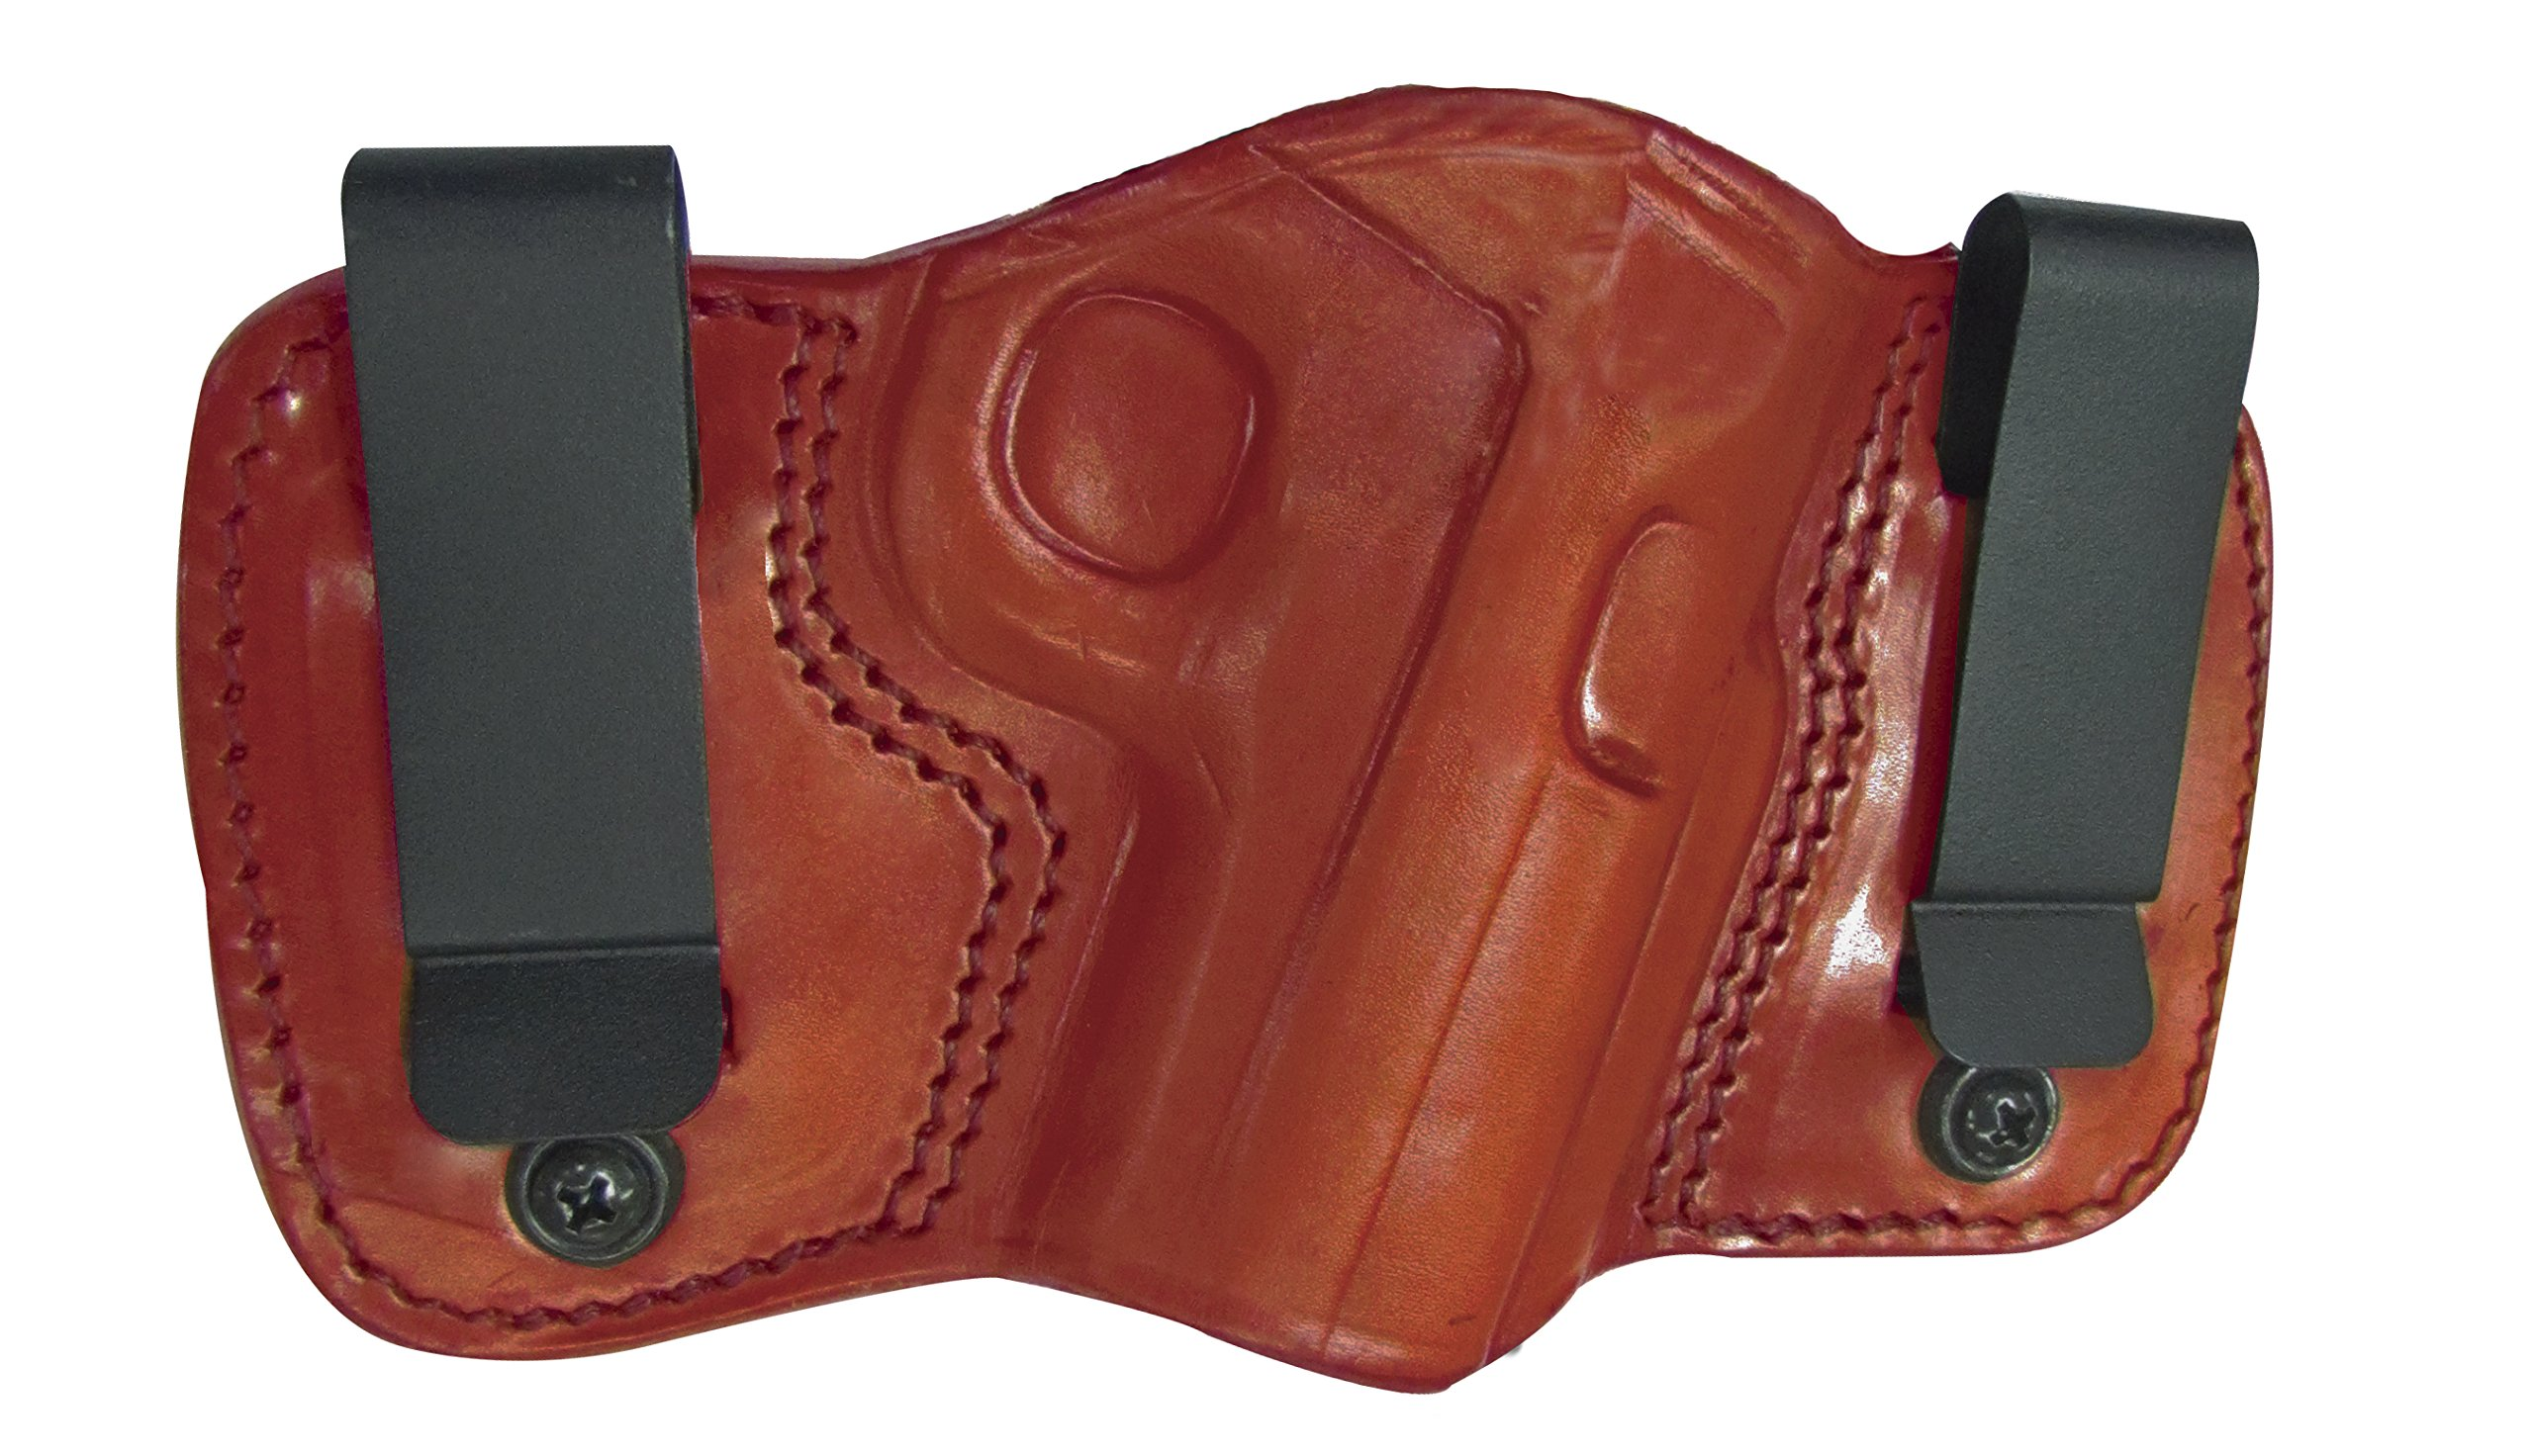 Tagua DCH-333 Dual Clip Holster, Glock 26-27-33, Brown, Left Hand